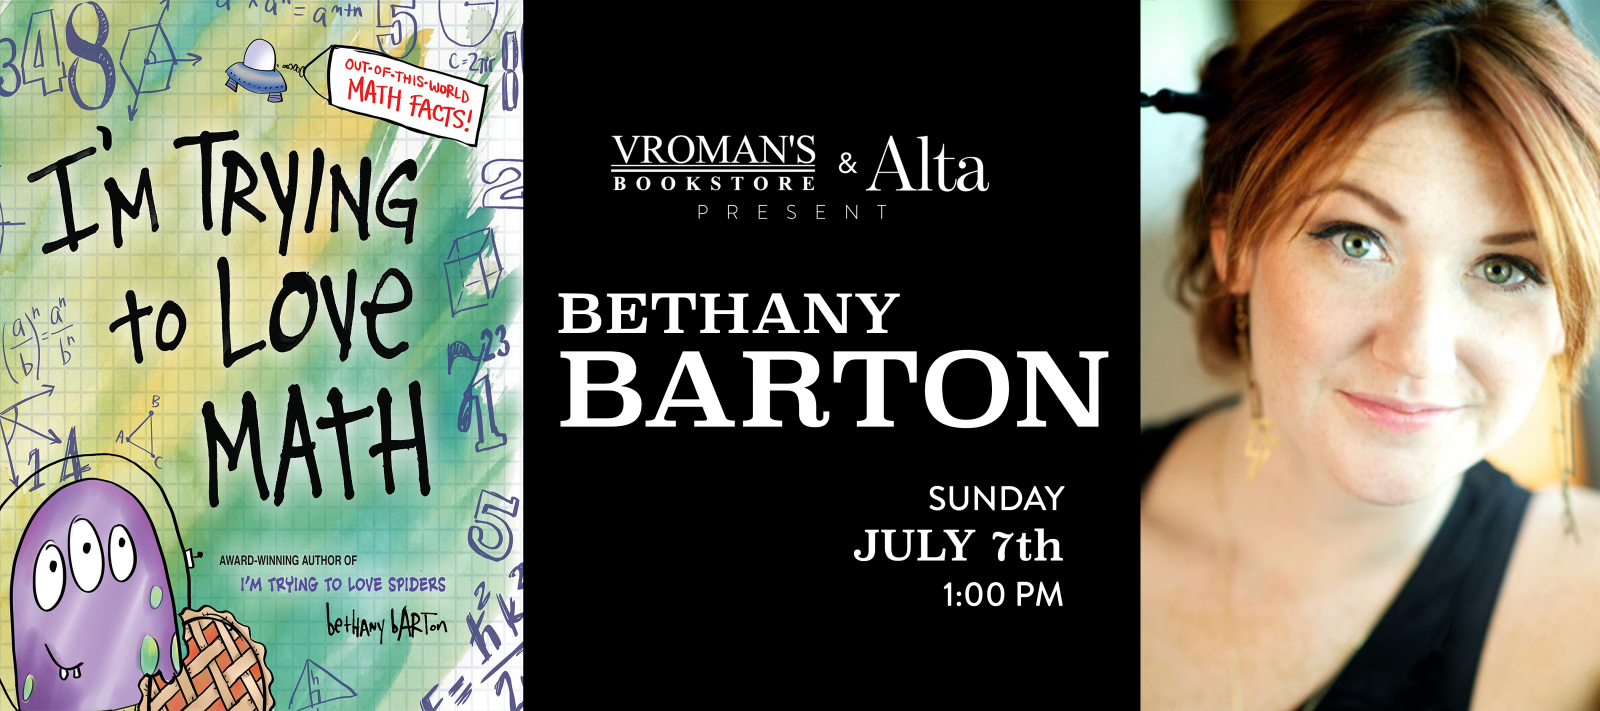 Bethany Barton Book Signing Sunday July 7th